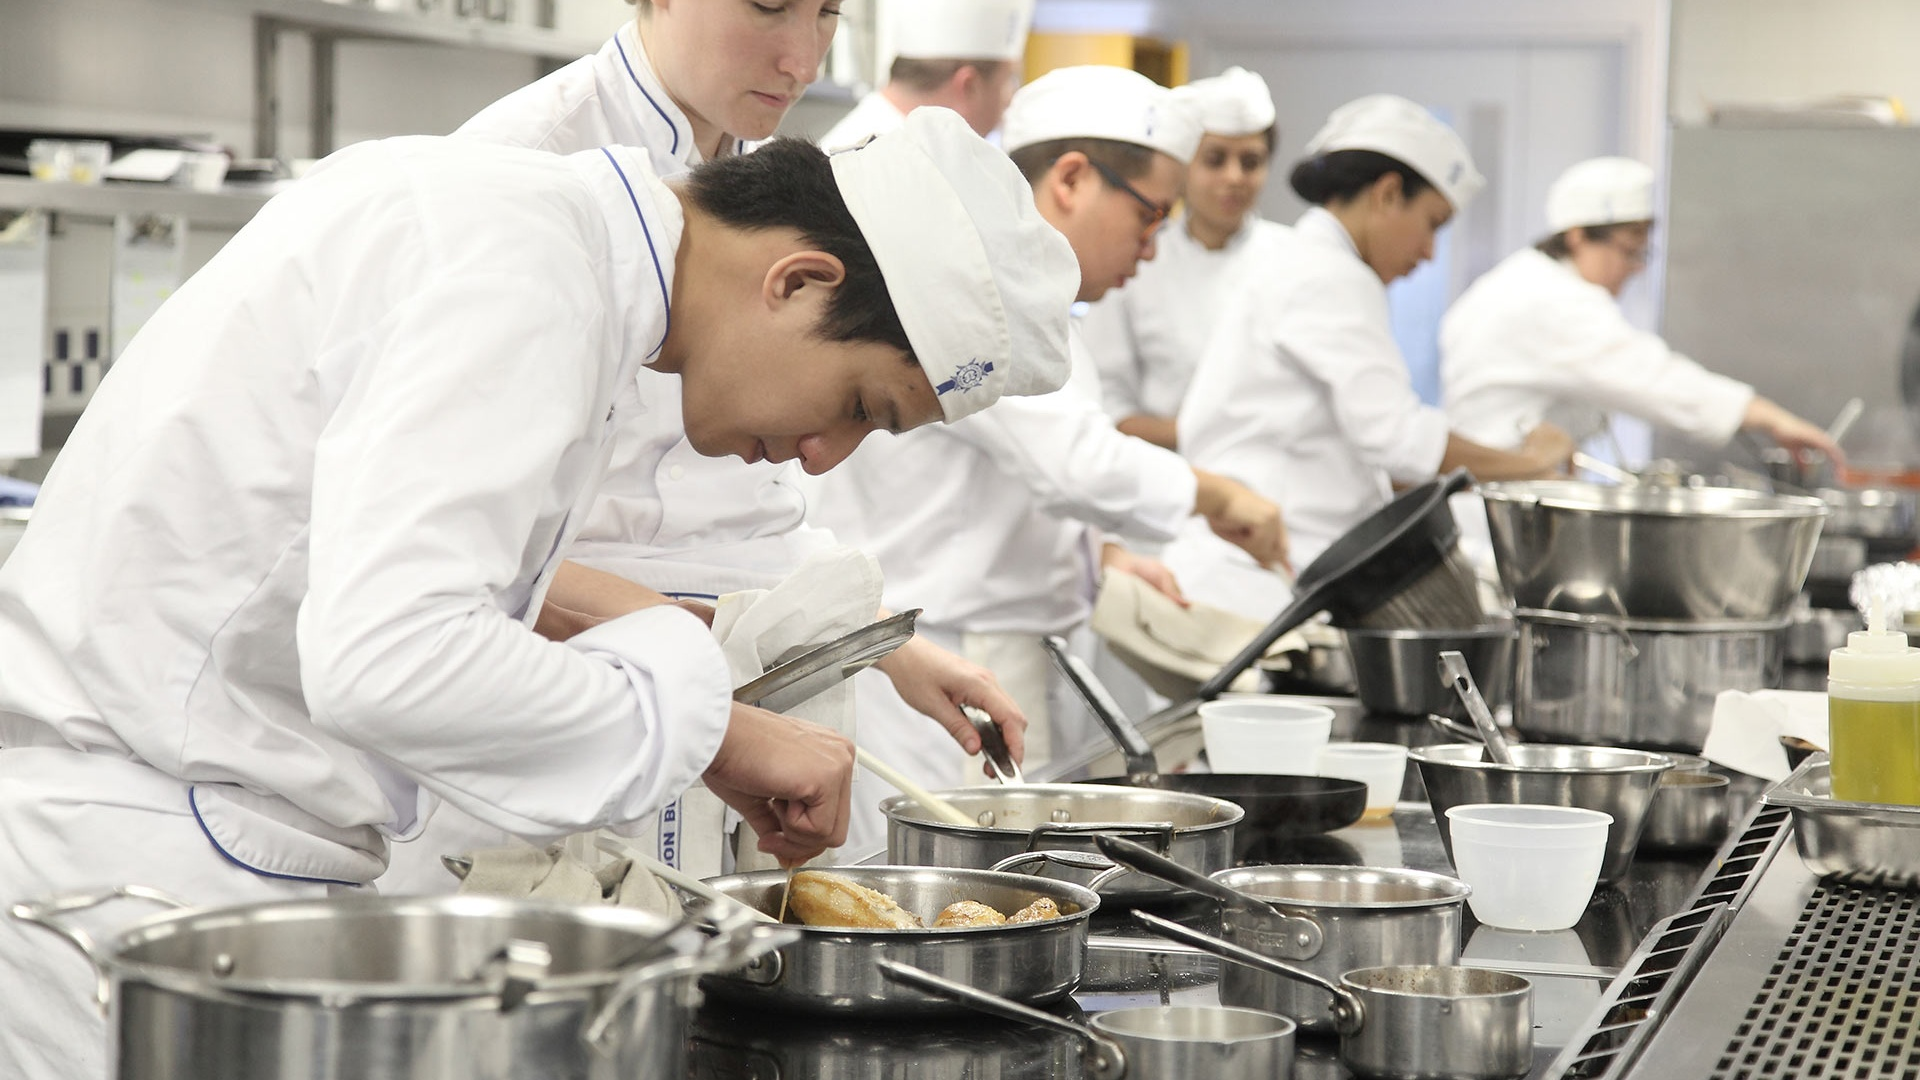 Le Cordon Bleu announces finalists for the 2017 Scholarship Award